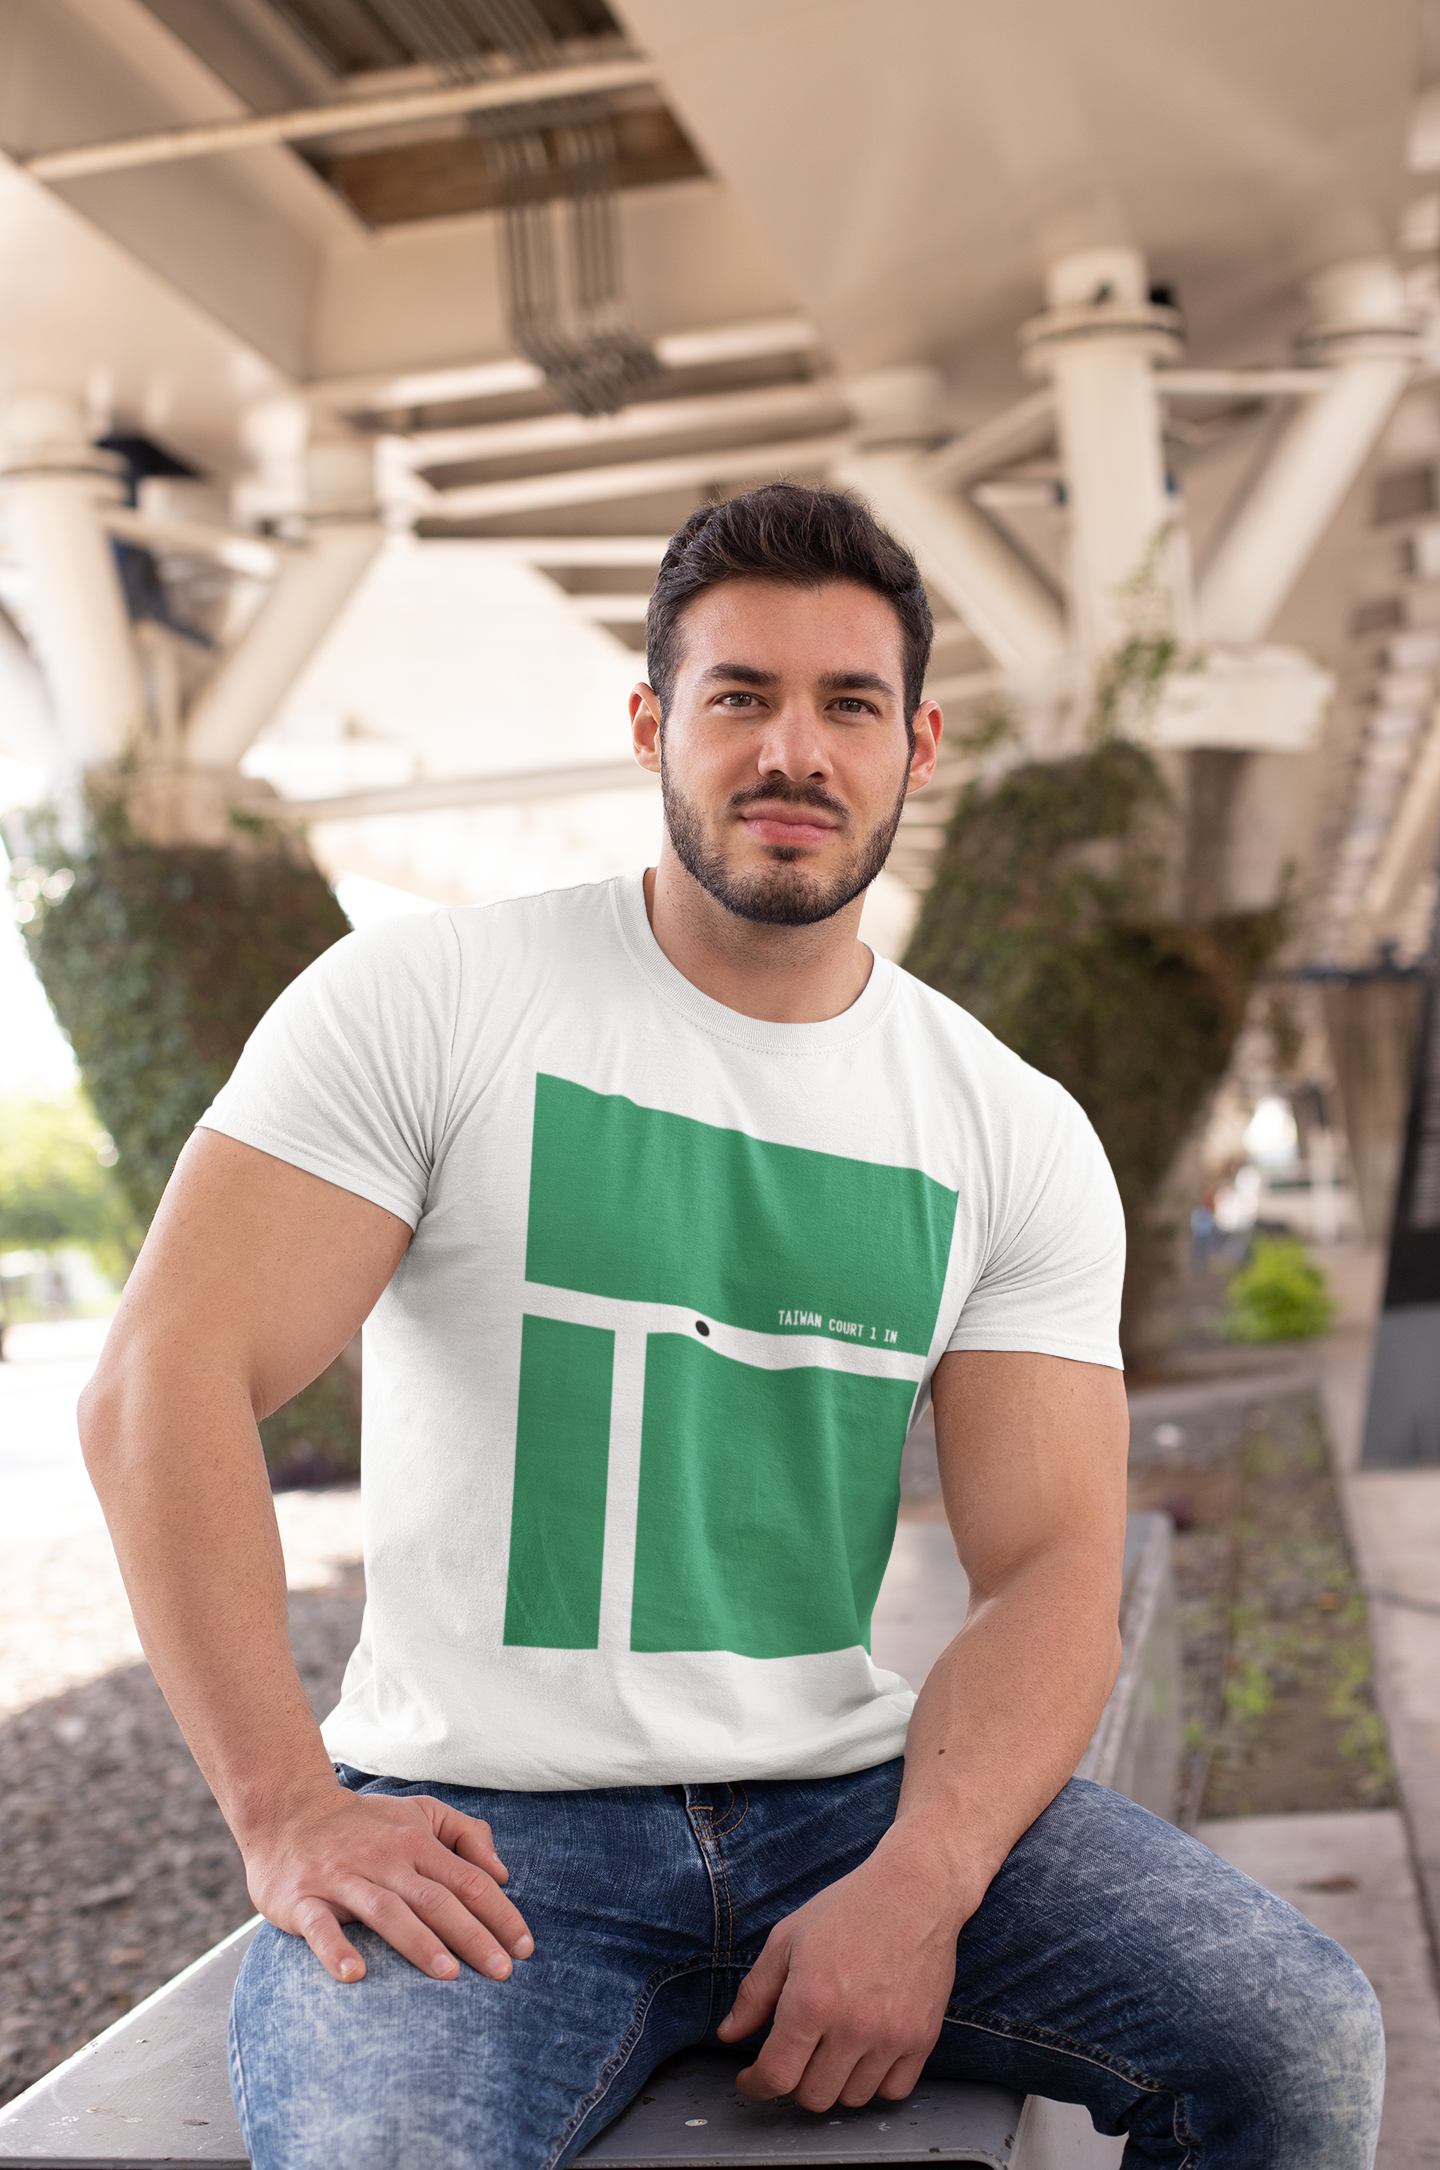 t-shirt-mockup-of-a-muscular-man-sitting-on-a-bench-in-the-city-28516.png